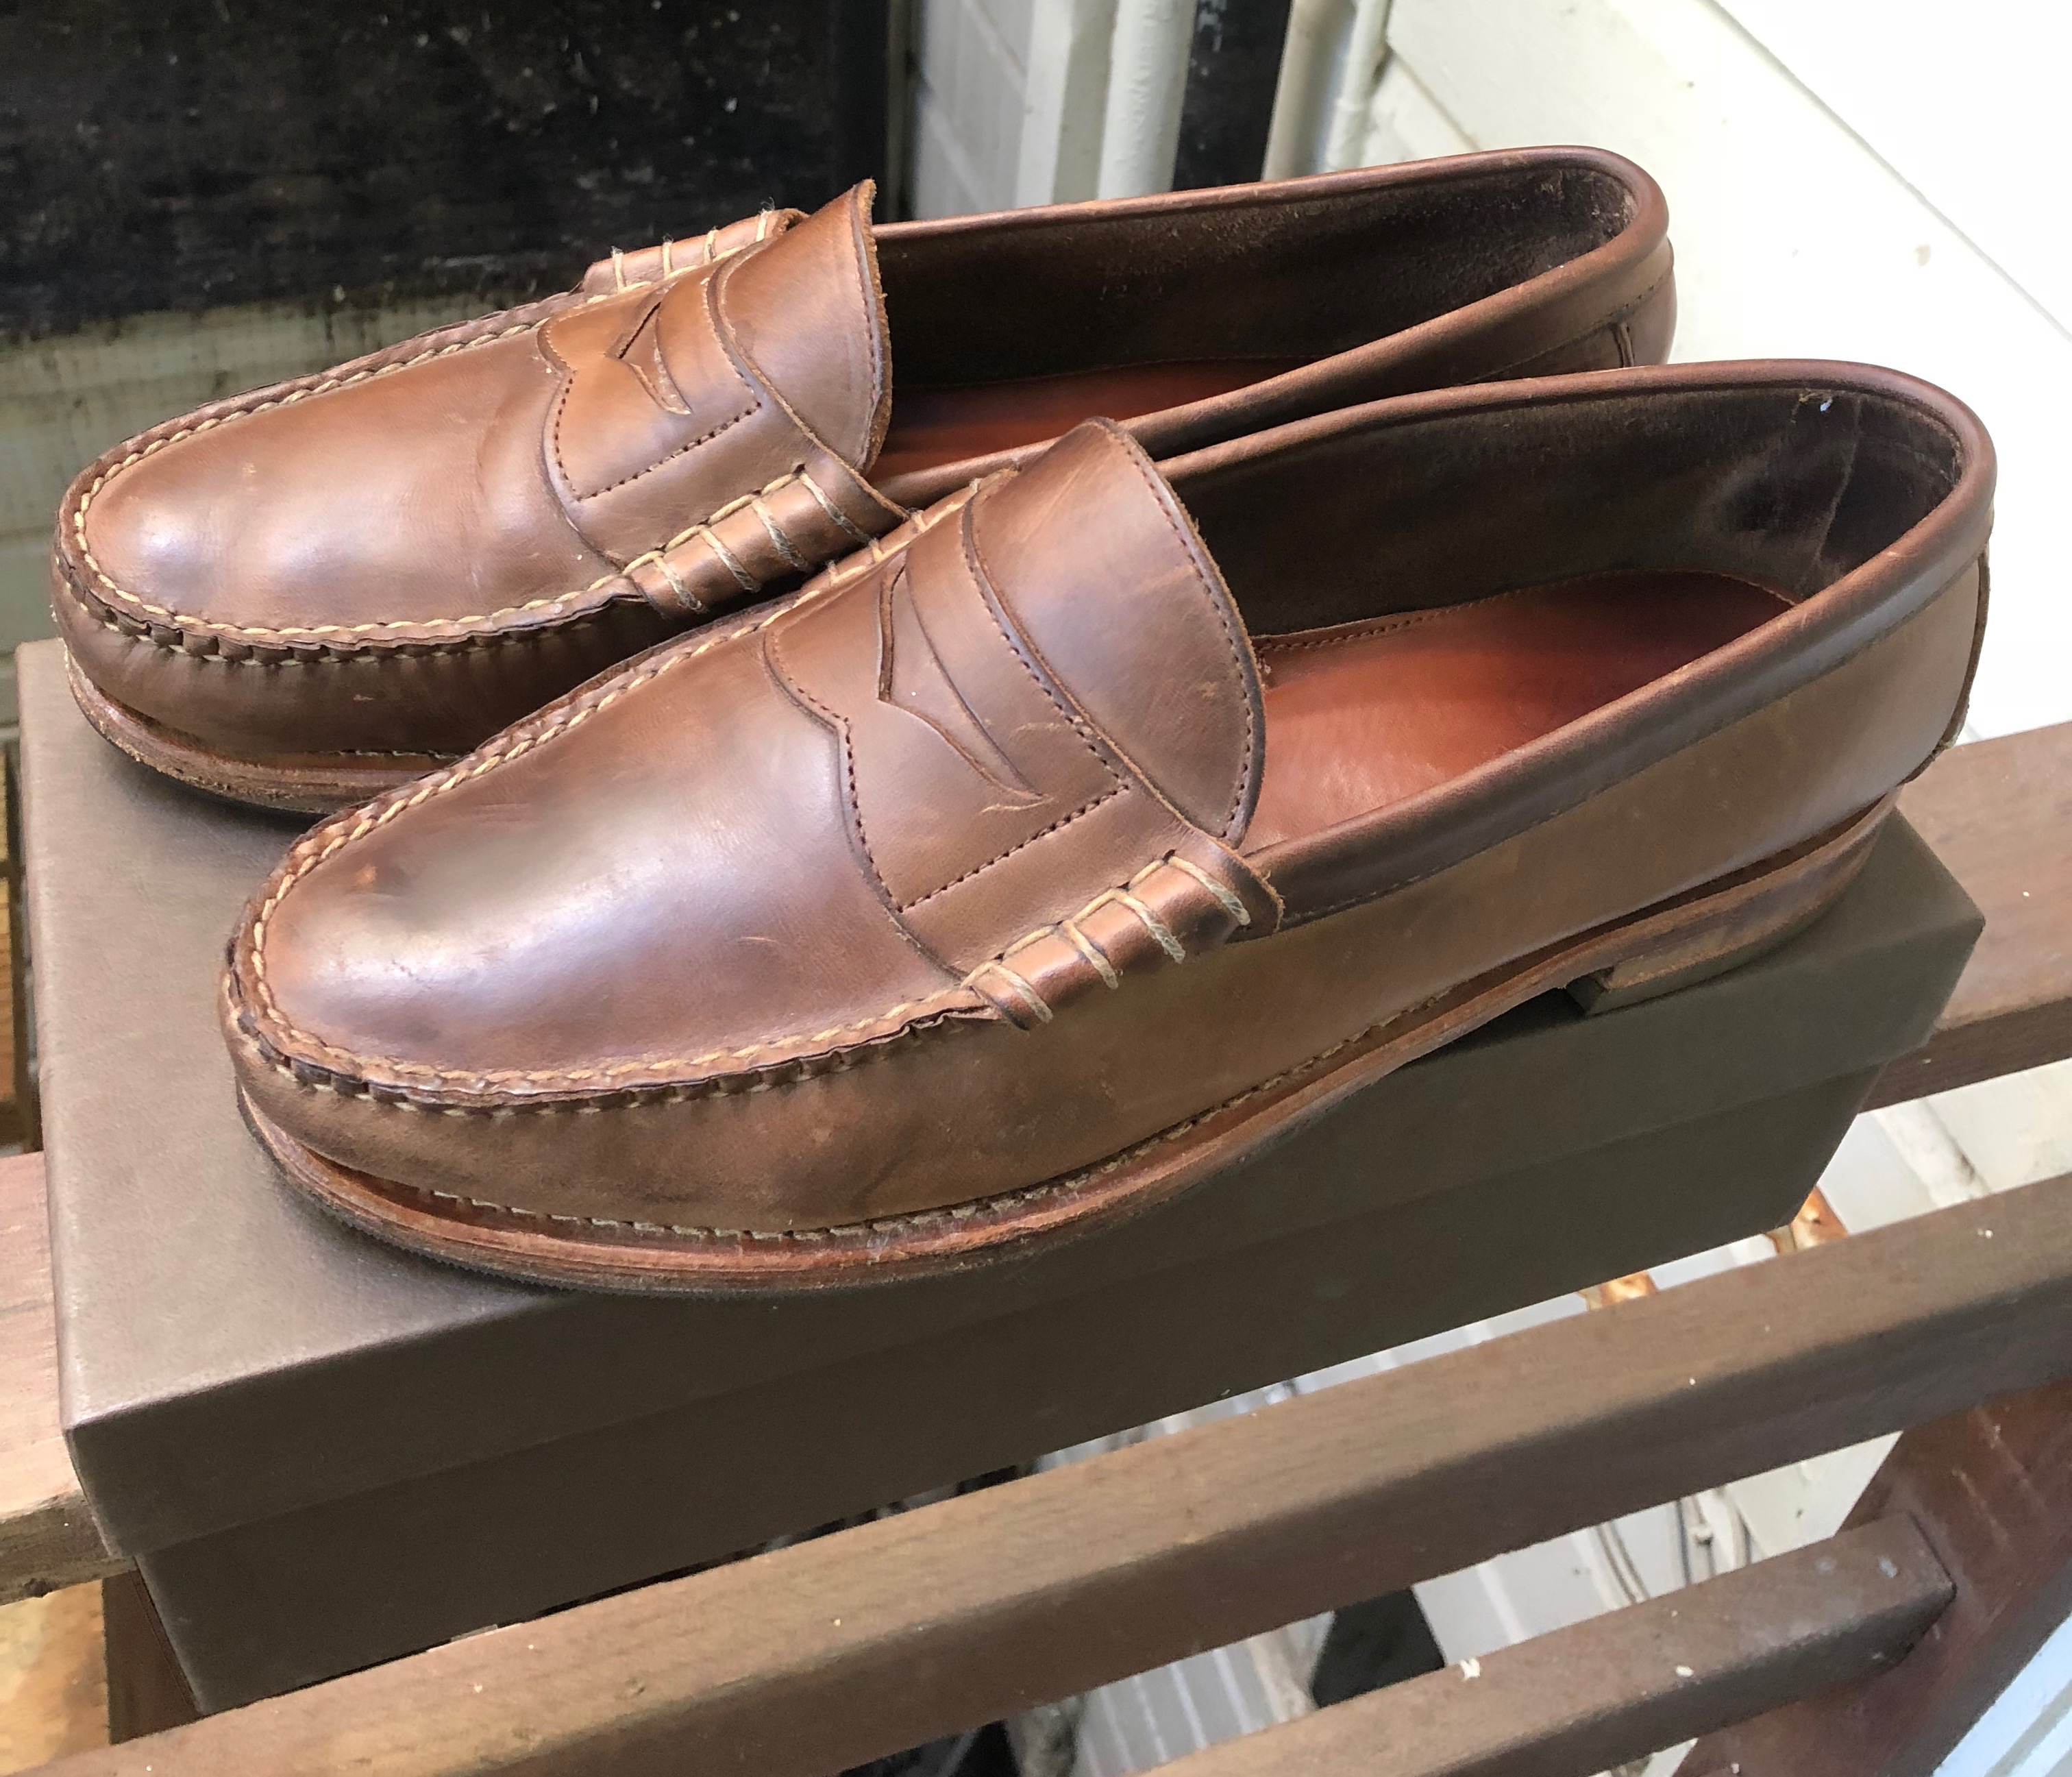 0e4aa360c7 Rancourt   Co. Beefroll Penny Loafers Size 12 - Casual Leather Shoes ...